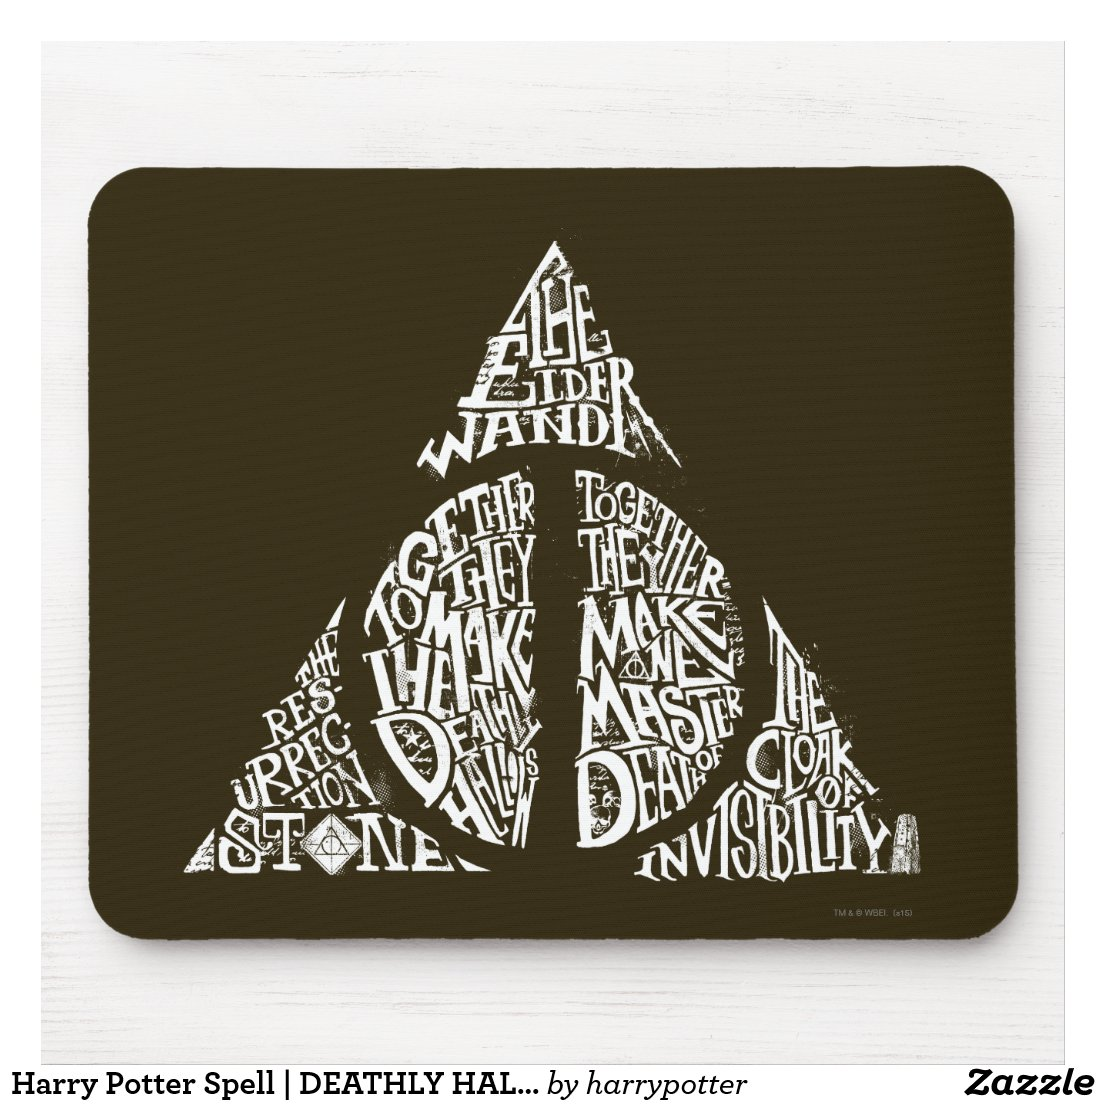 Harry Potter Spell | DEATHLY HALLOWS Typography Mouse Mat